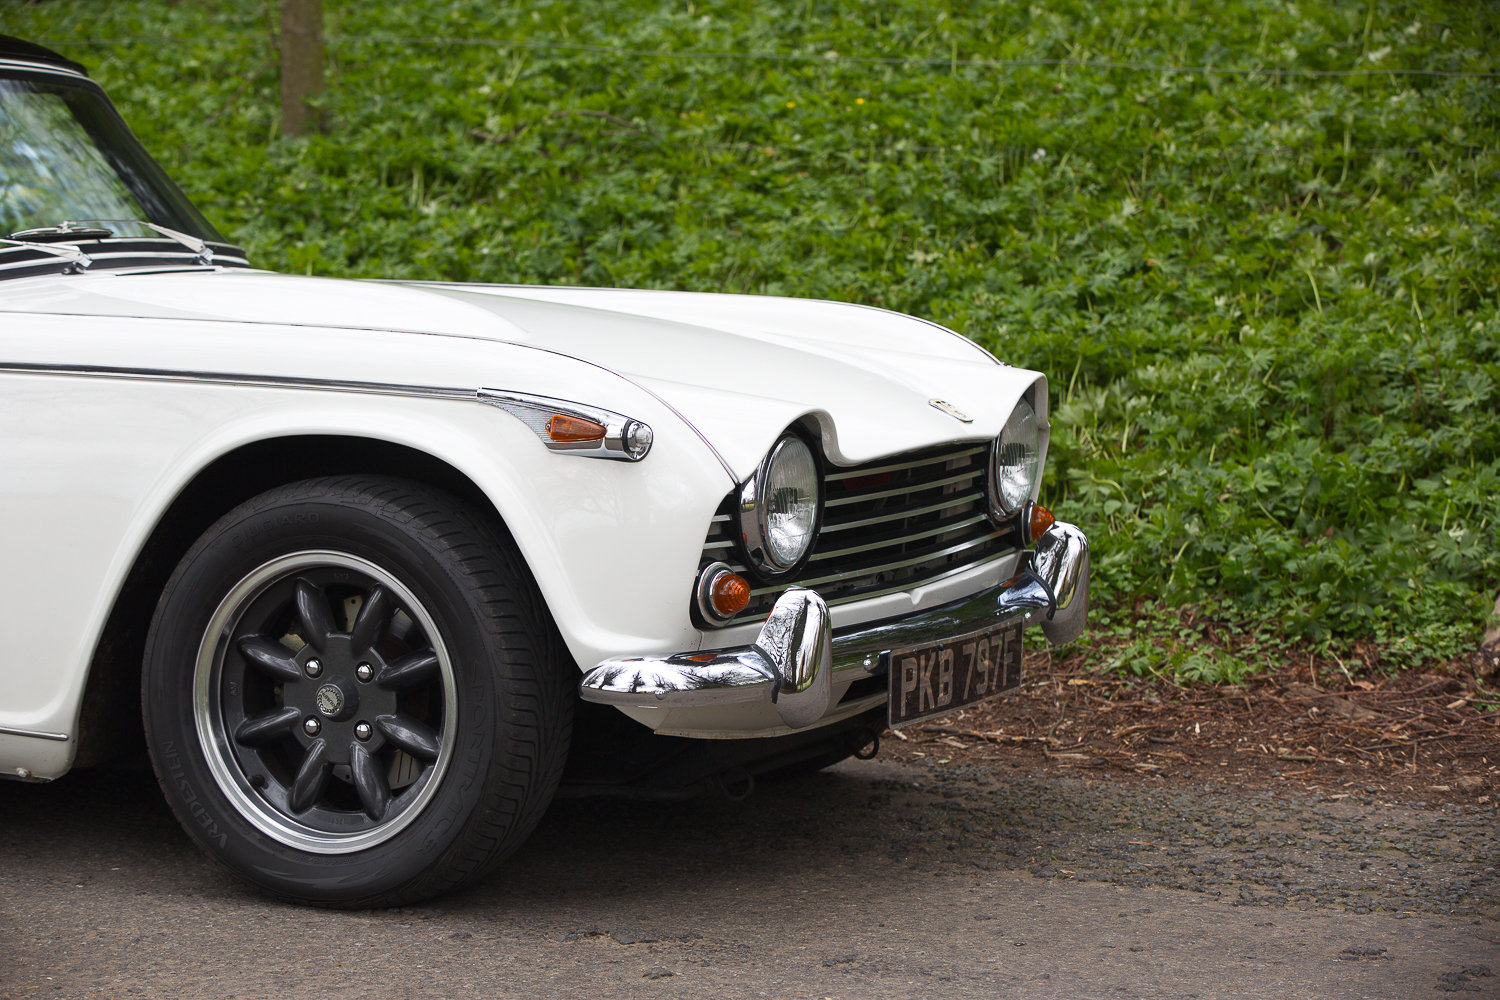 1968 TRIUMPH TR5 PI RHD UK CAR COLOSSAL HISTORY MATCHING NUMBERS  For Sale (picture 4 of 6)